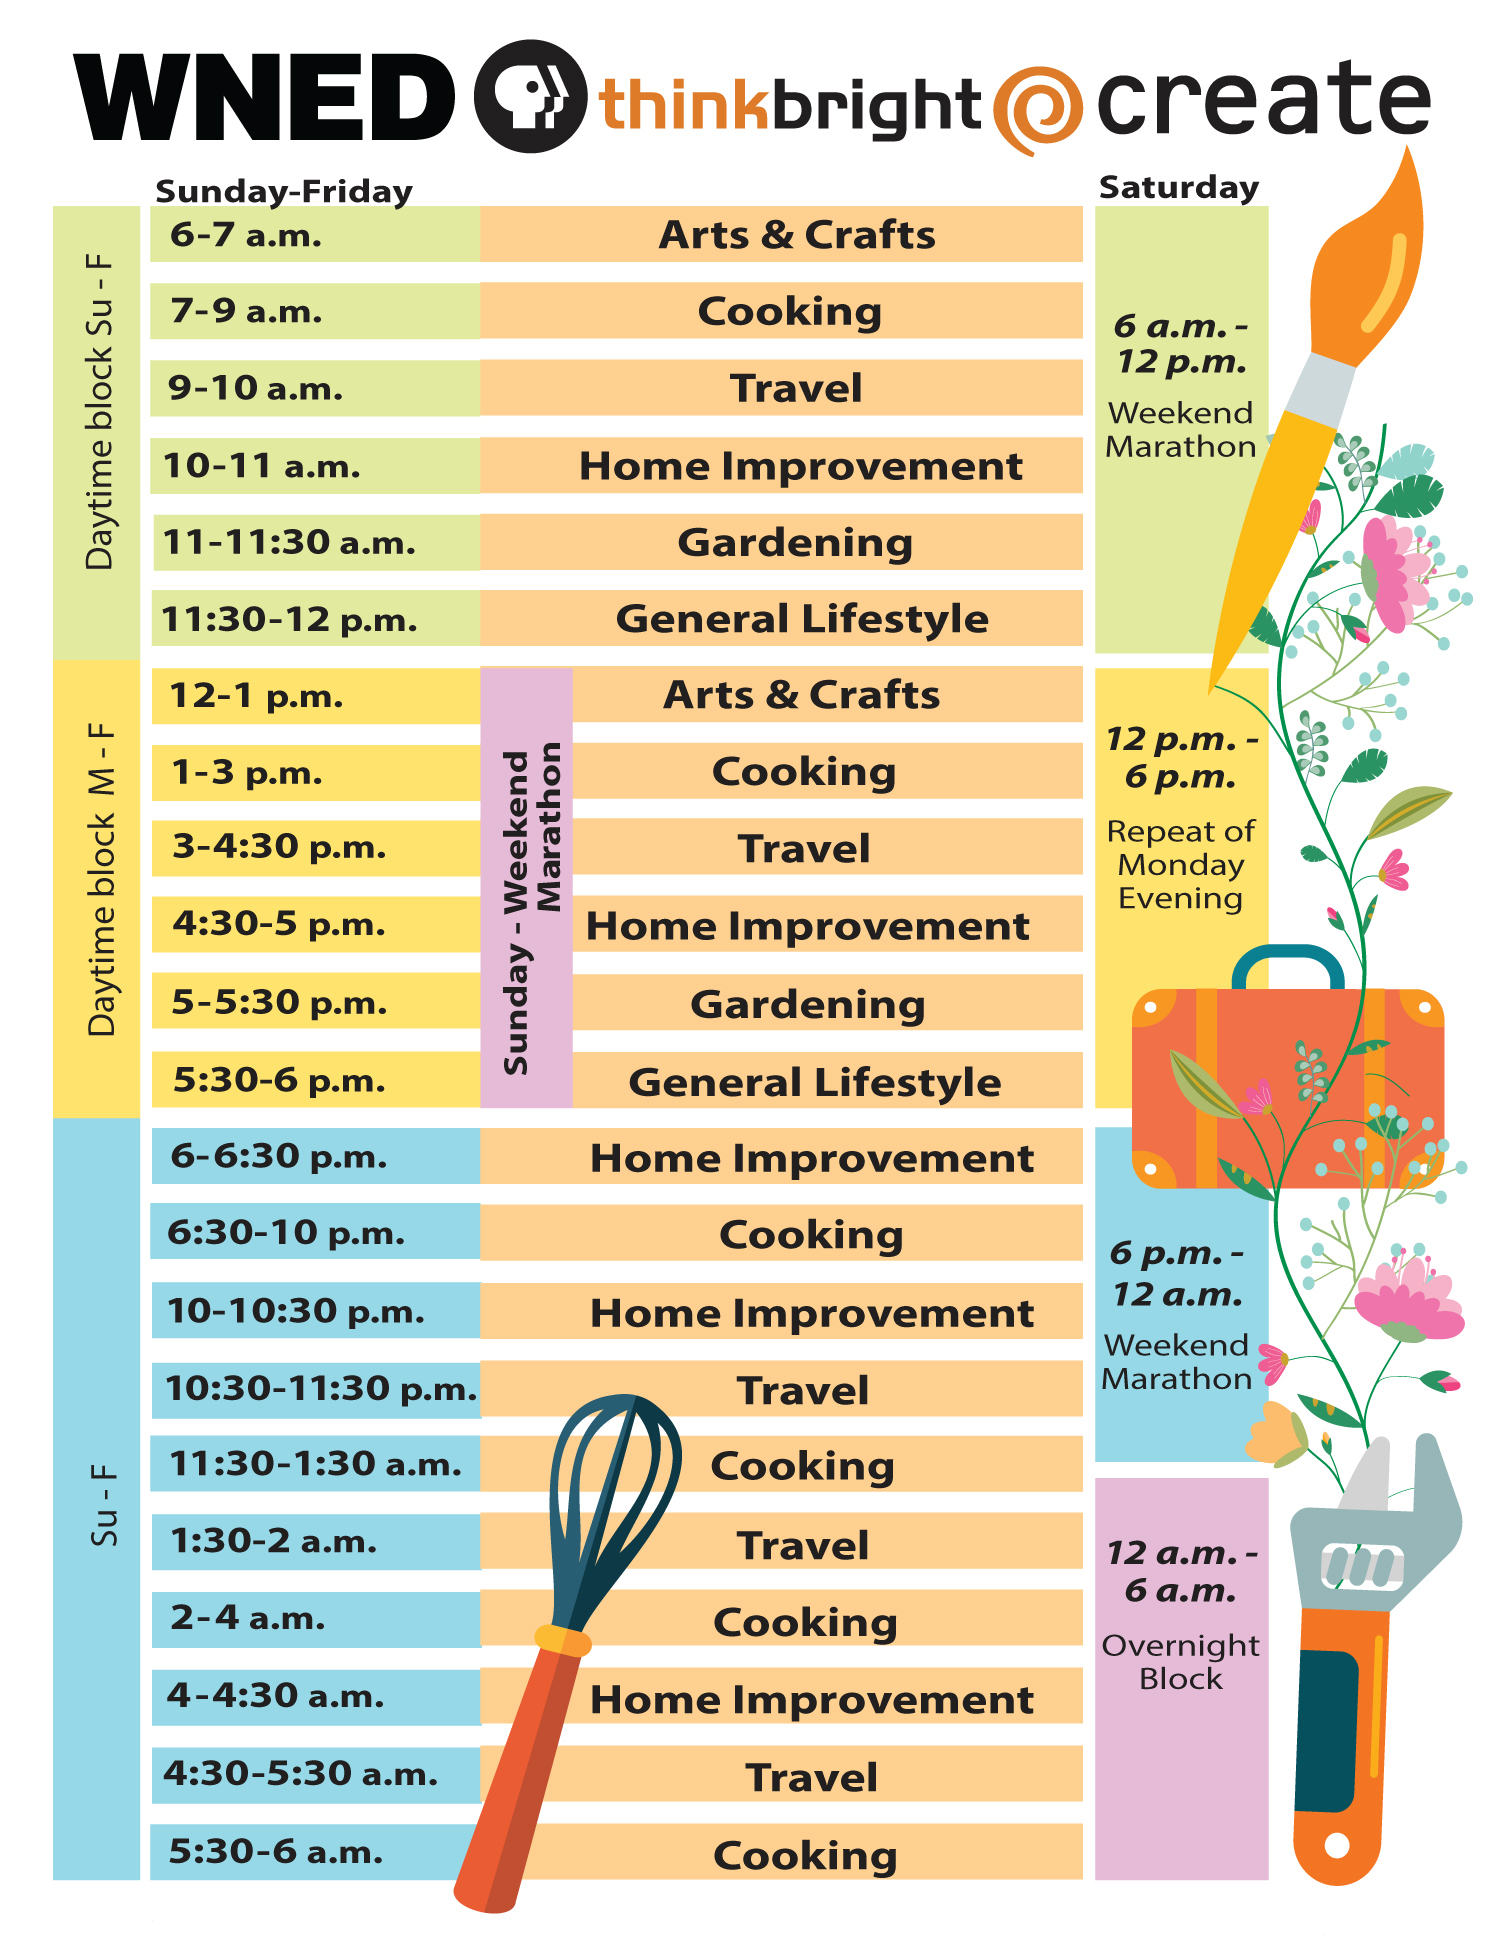 WNED thinkbright Create Schedule